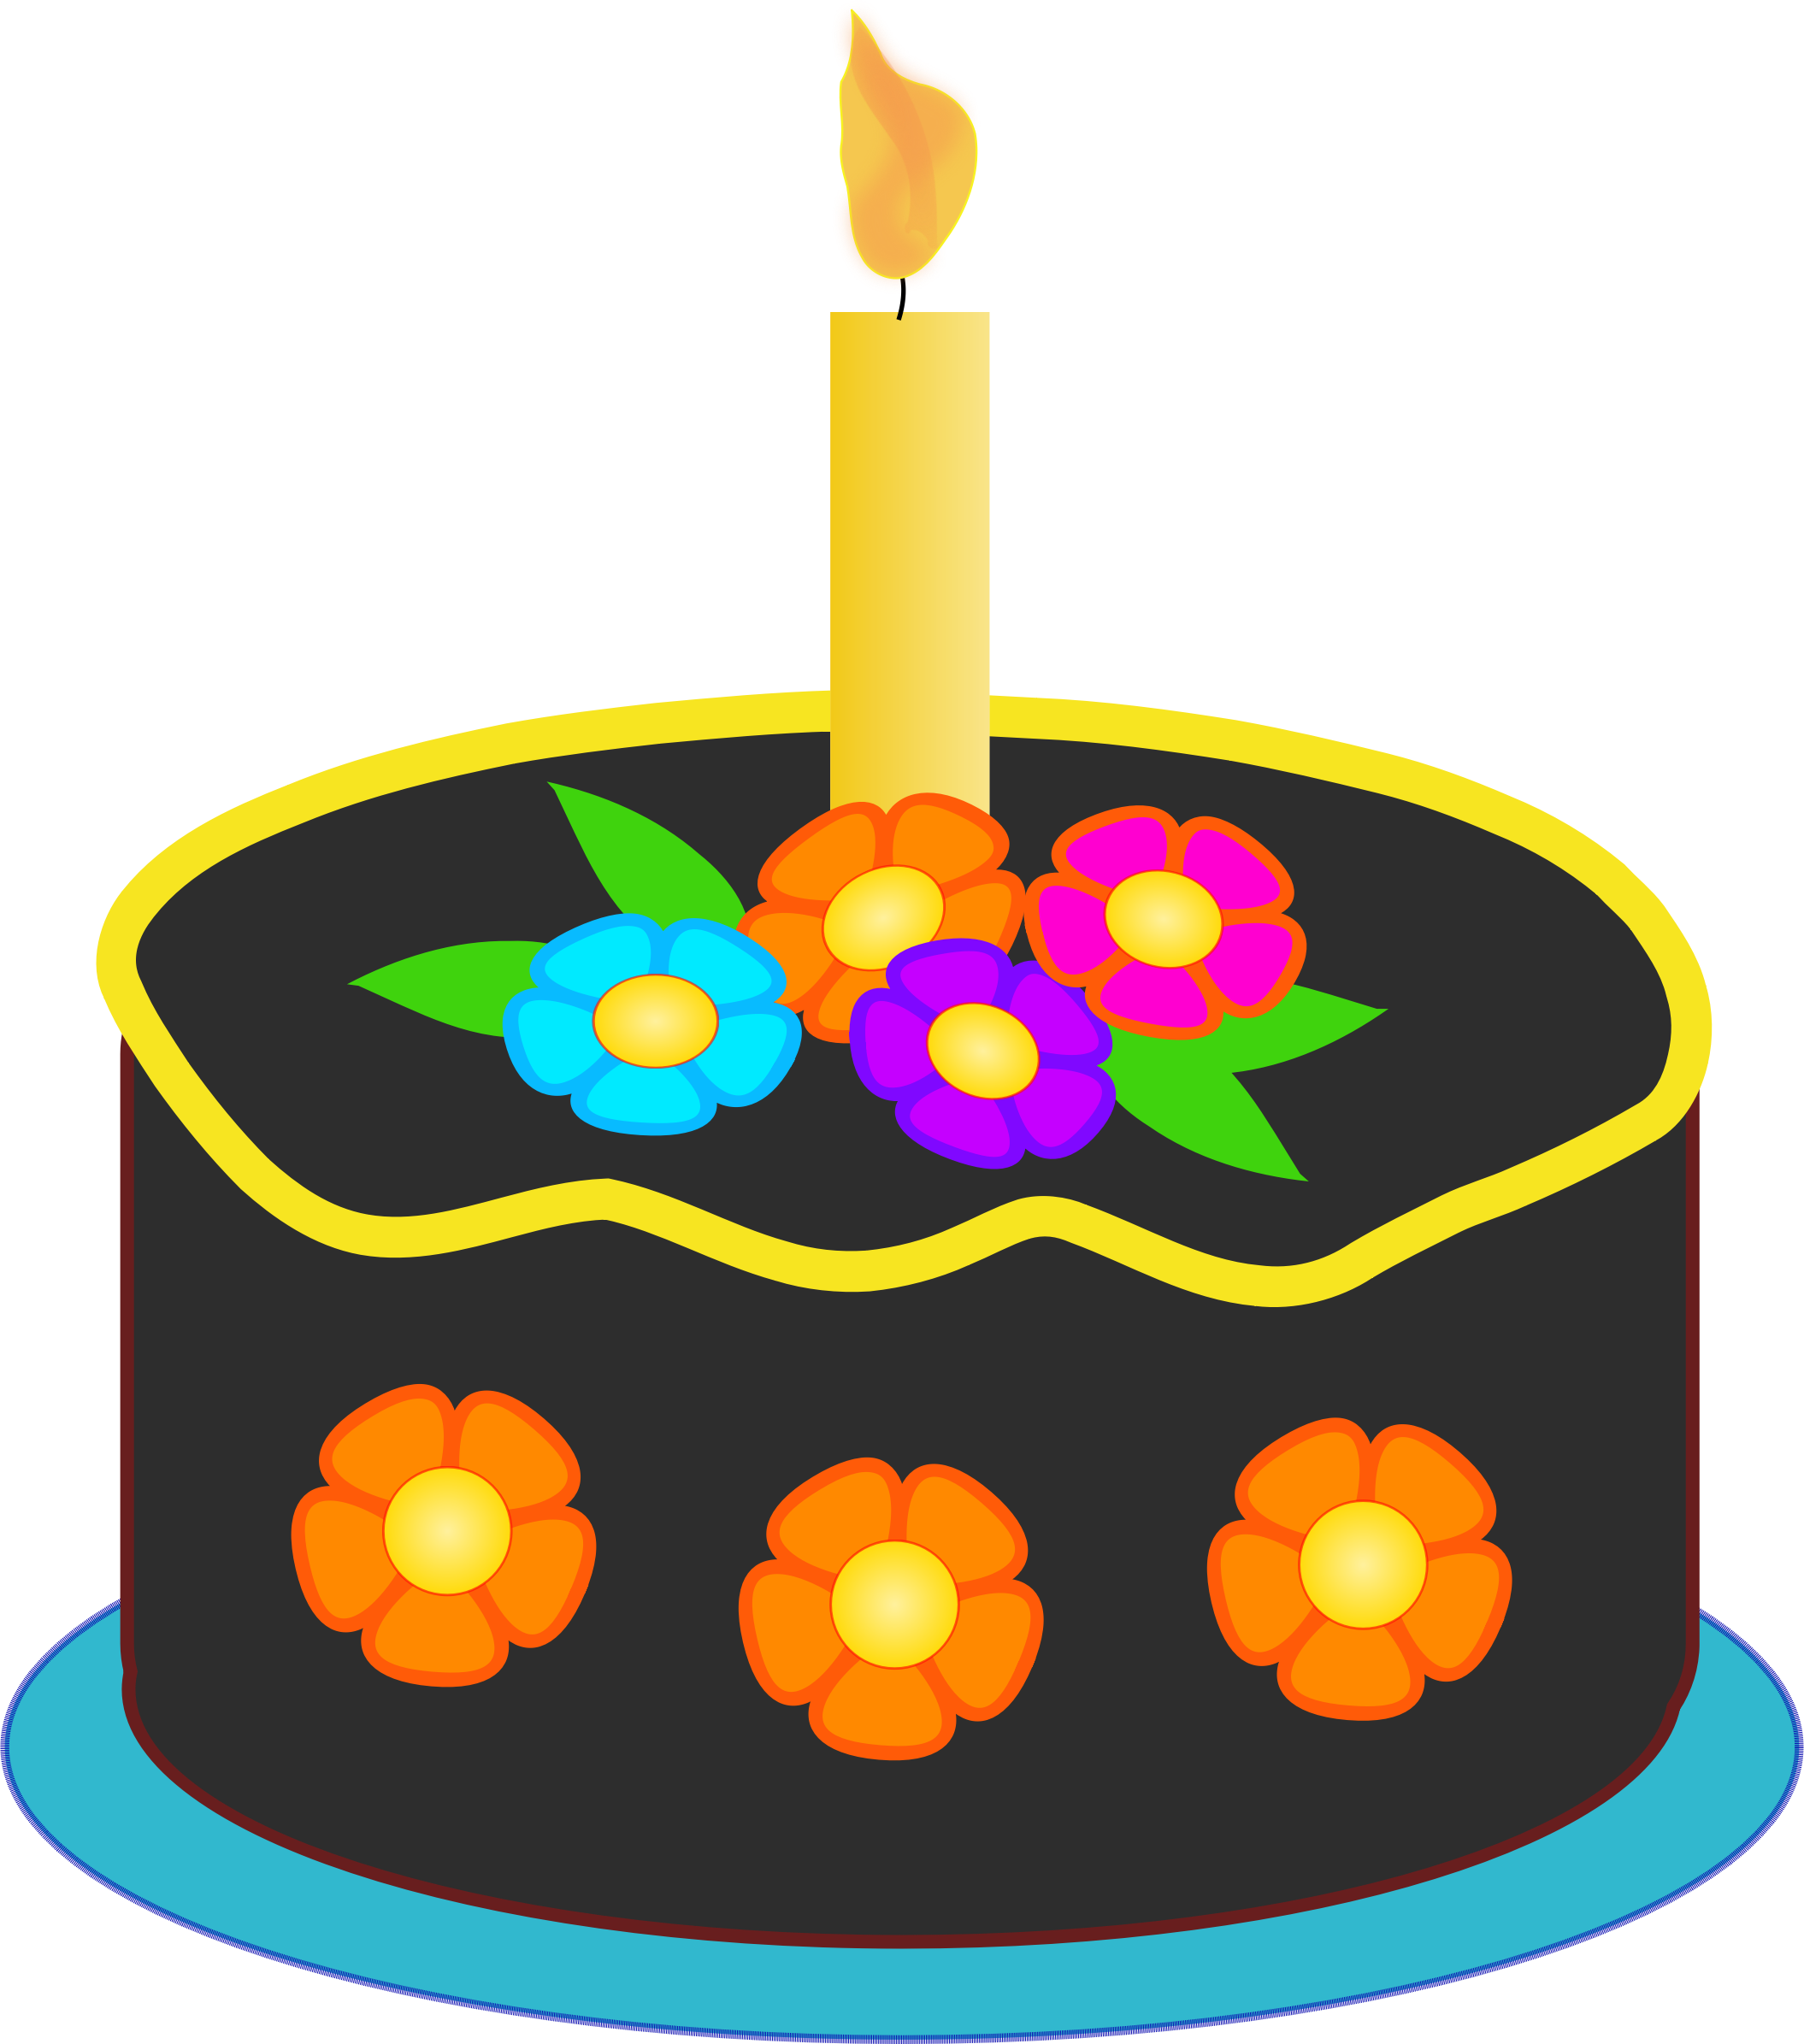 Image for free birthday cake with colorful flowers high resolution